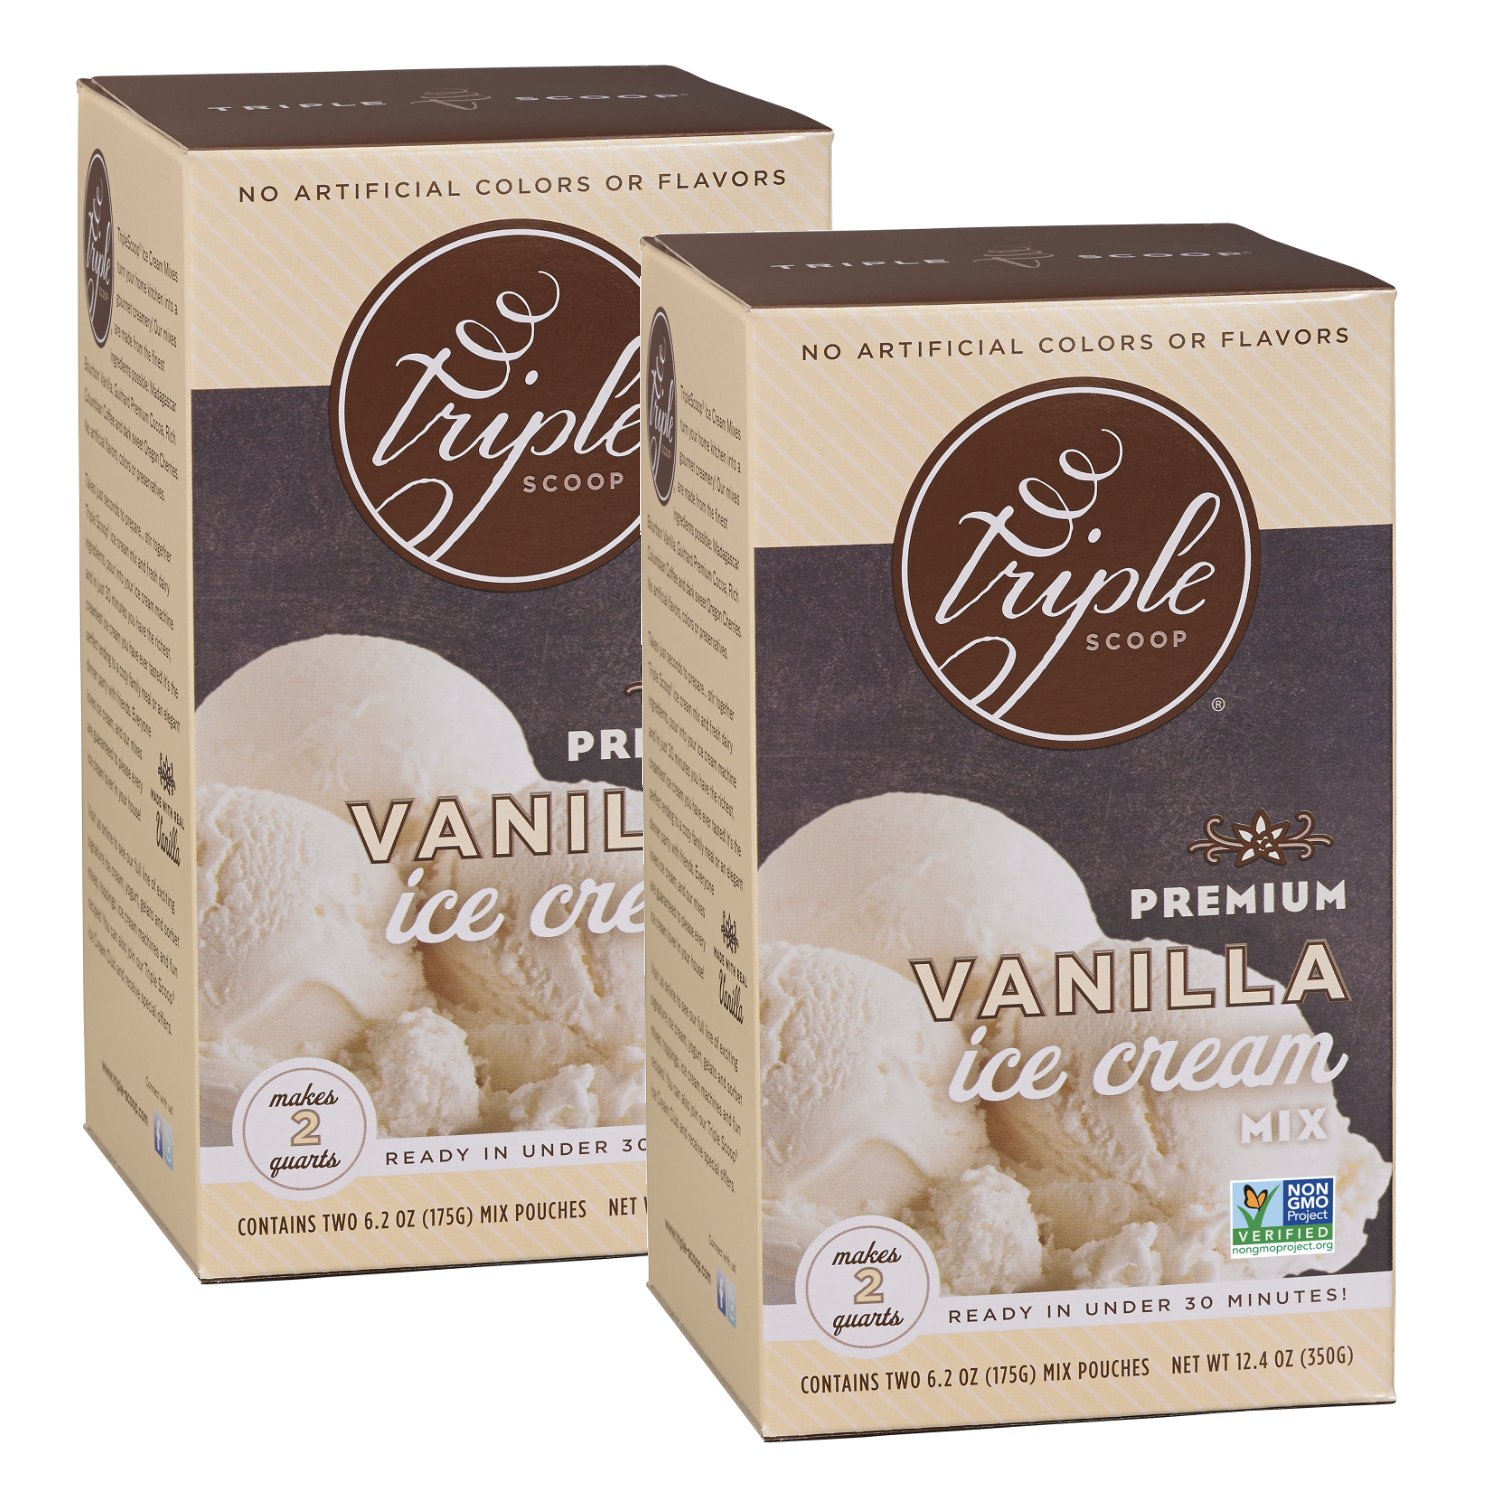 Triple Scoop Ice Cream Mix, Premium Vanilla, starter for use with home ice cream maker, non-gmo, no artificial colors or flavors, ready in under 30 mins, makes 4 qts (2 15oz boxes)